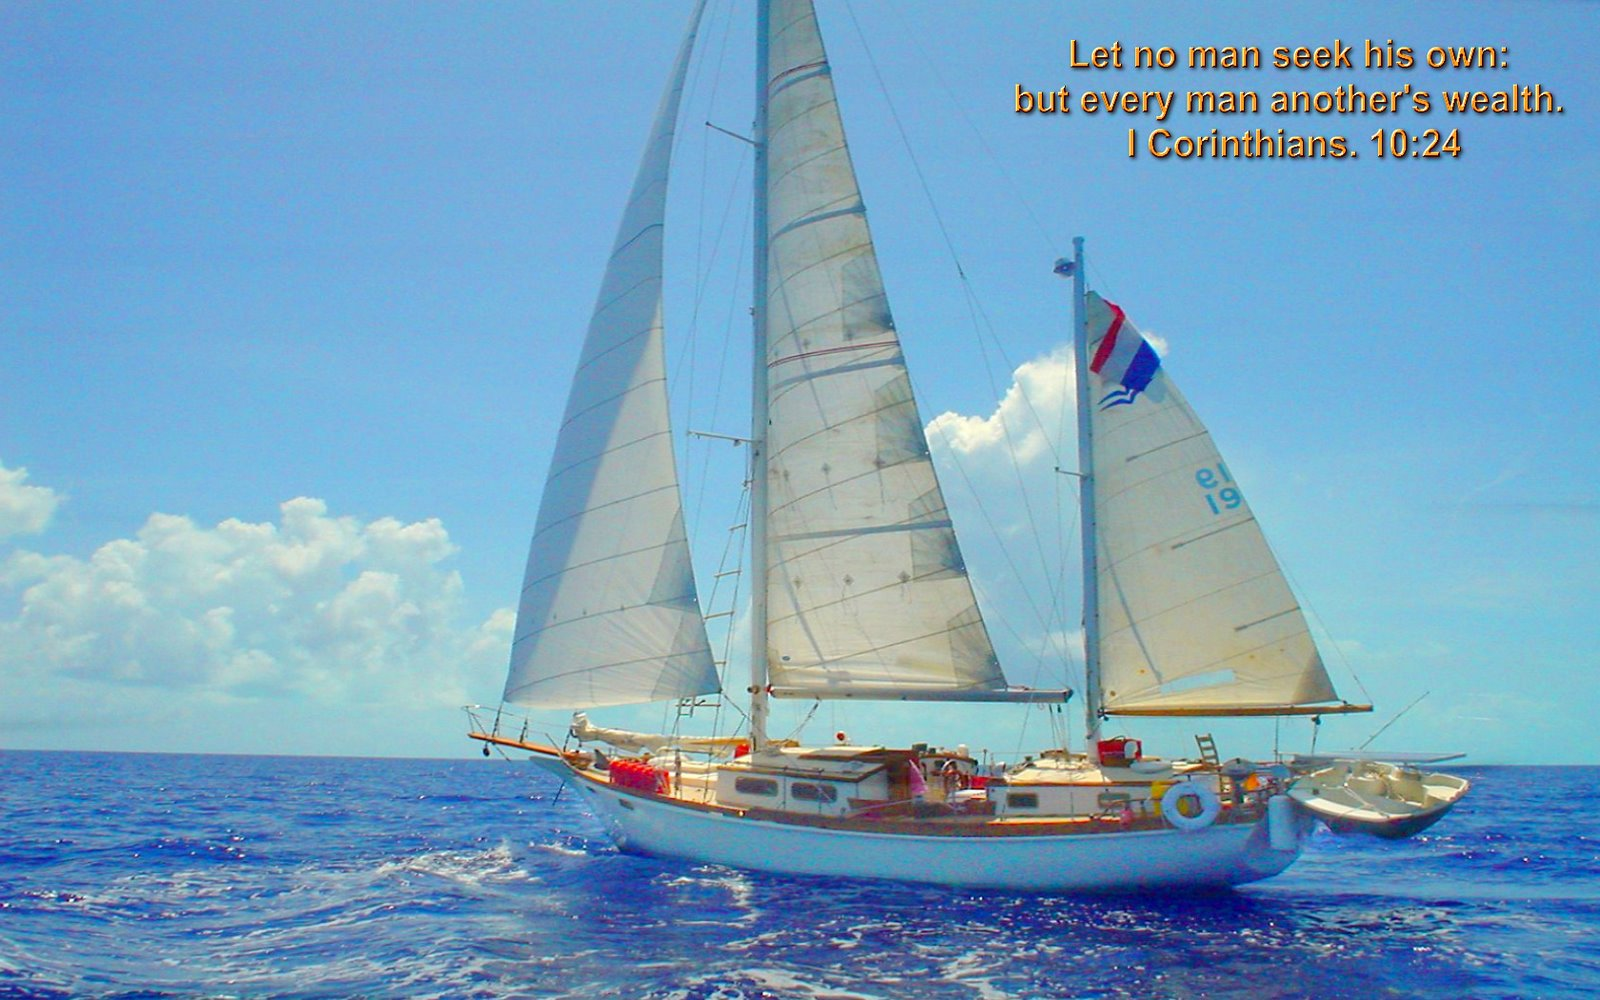 17 Best Images About Sailing Quotes On Pinterest: Inspirational Bible Versed Sailing Wallpapers